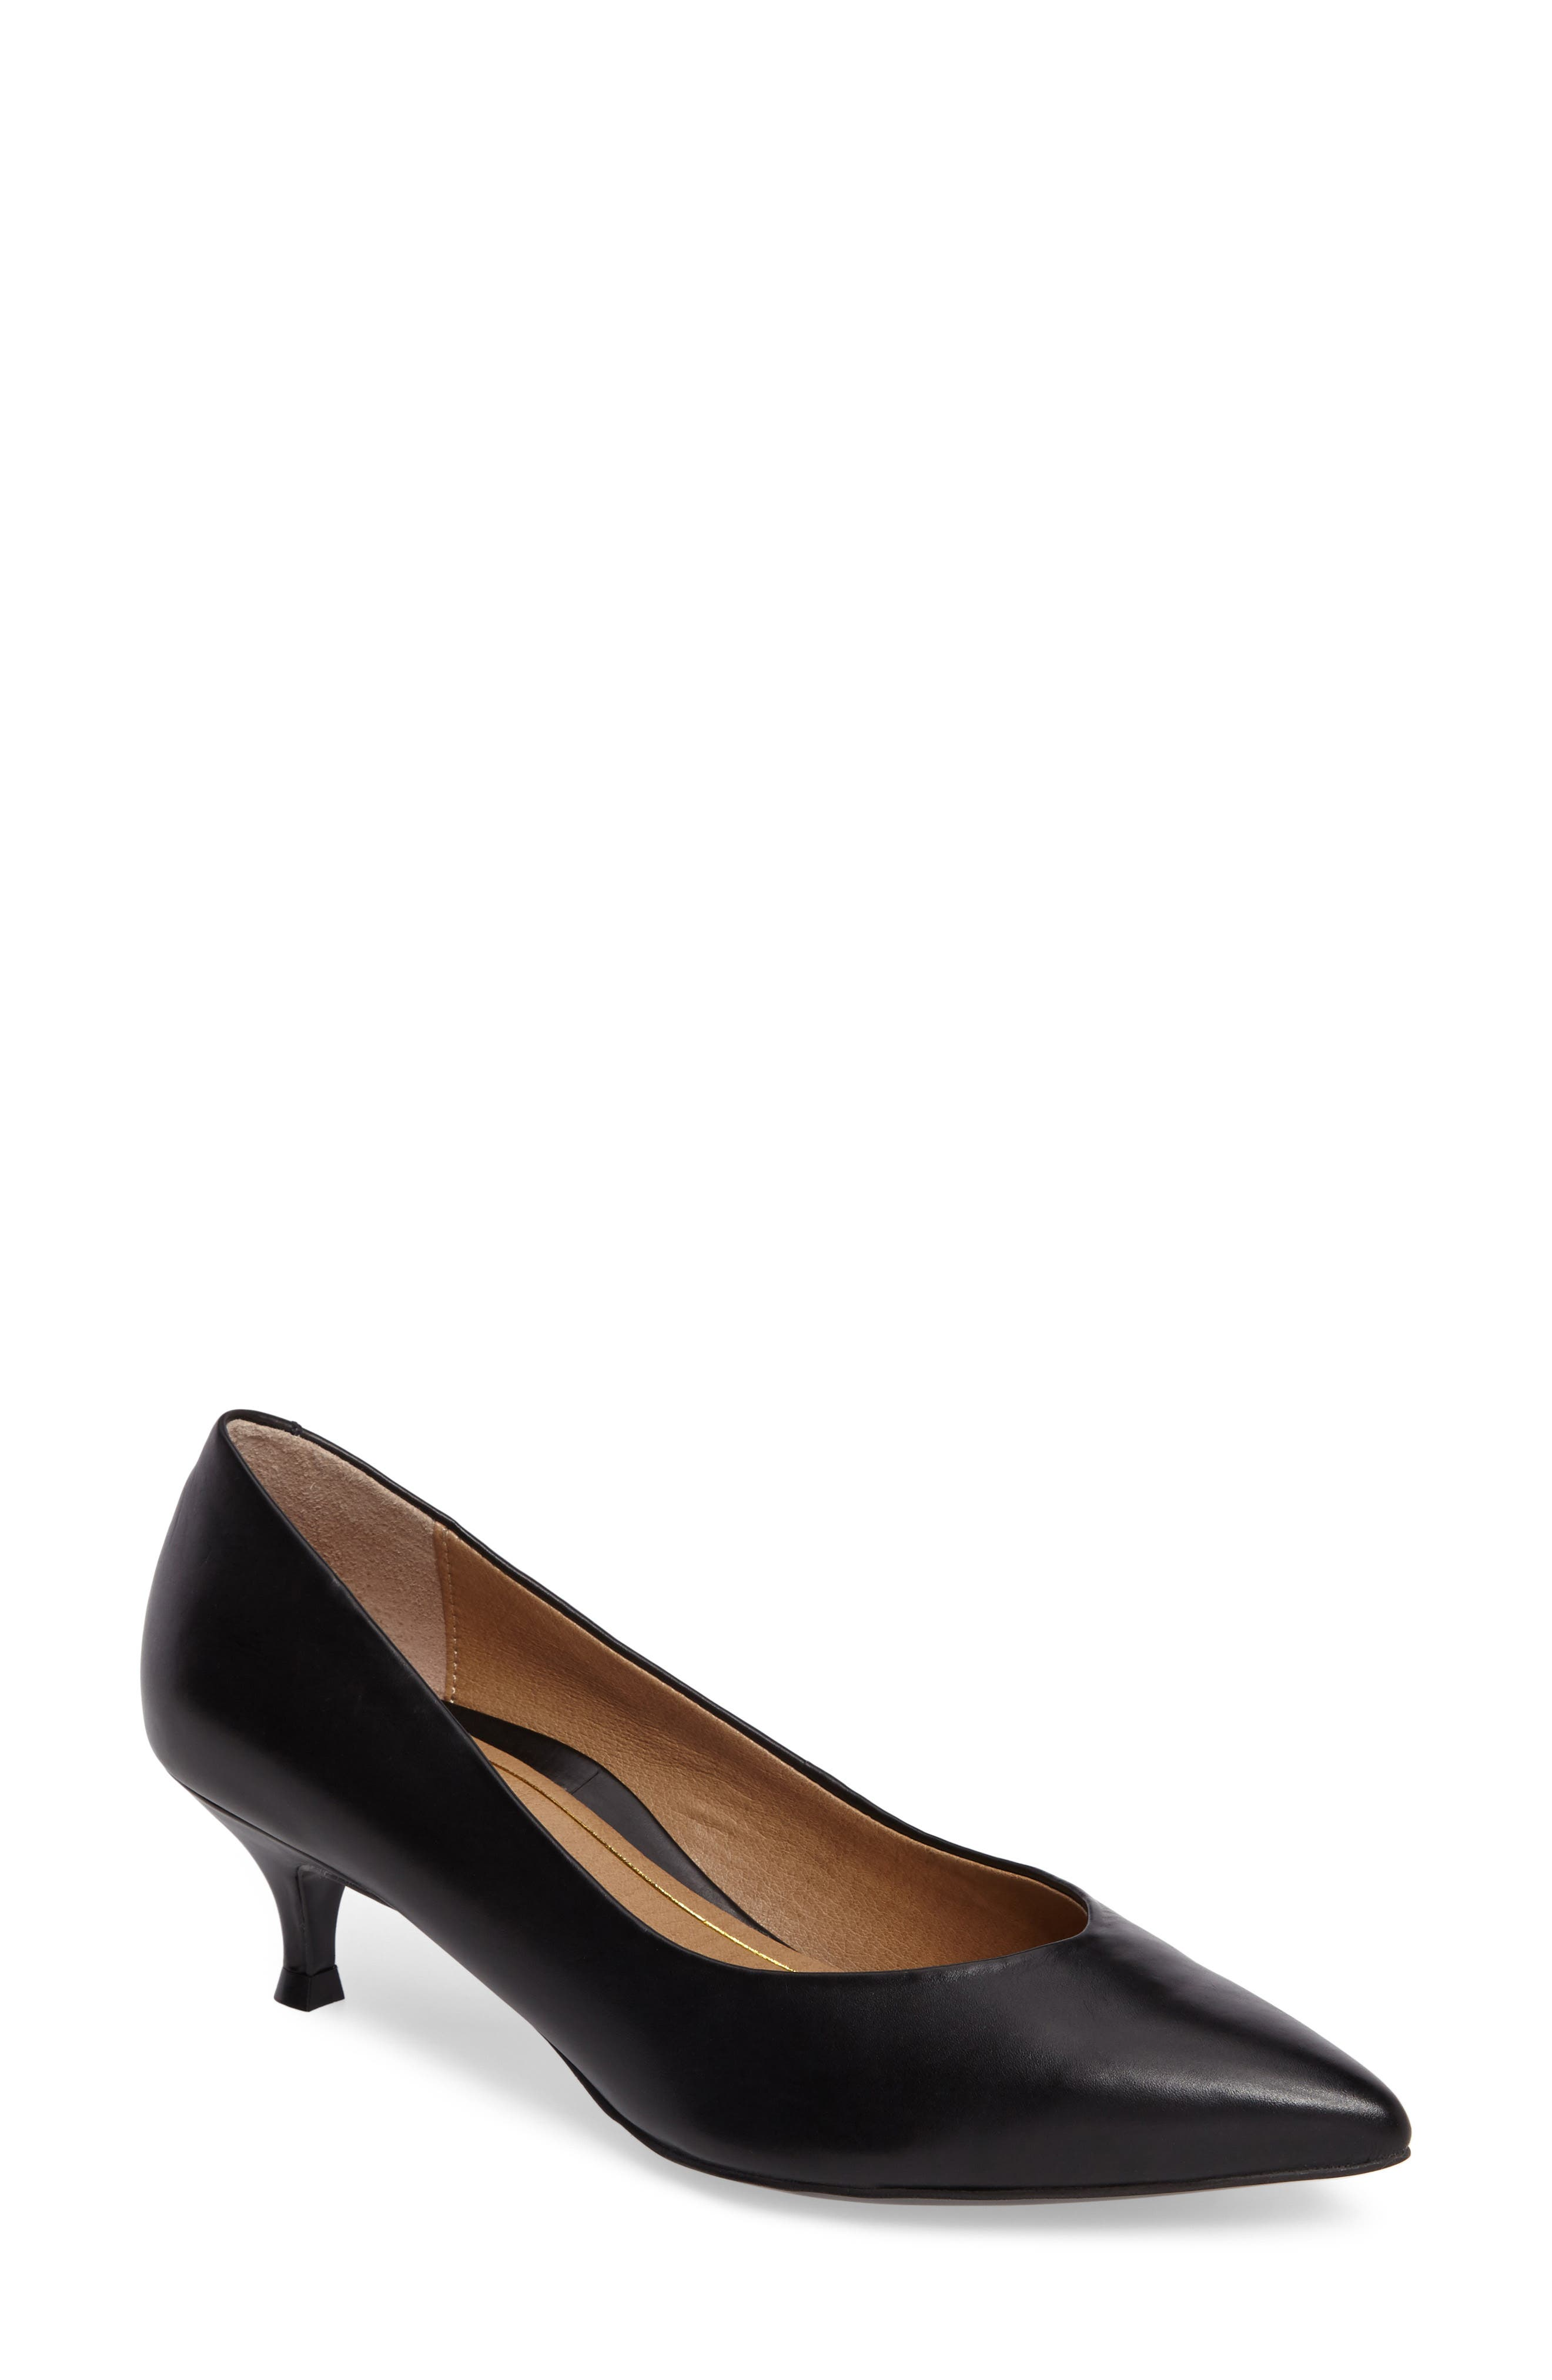 Vionic Josie Kitten Heel Pump (Women)